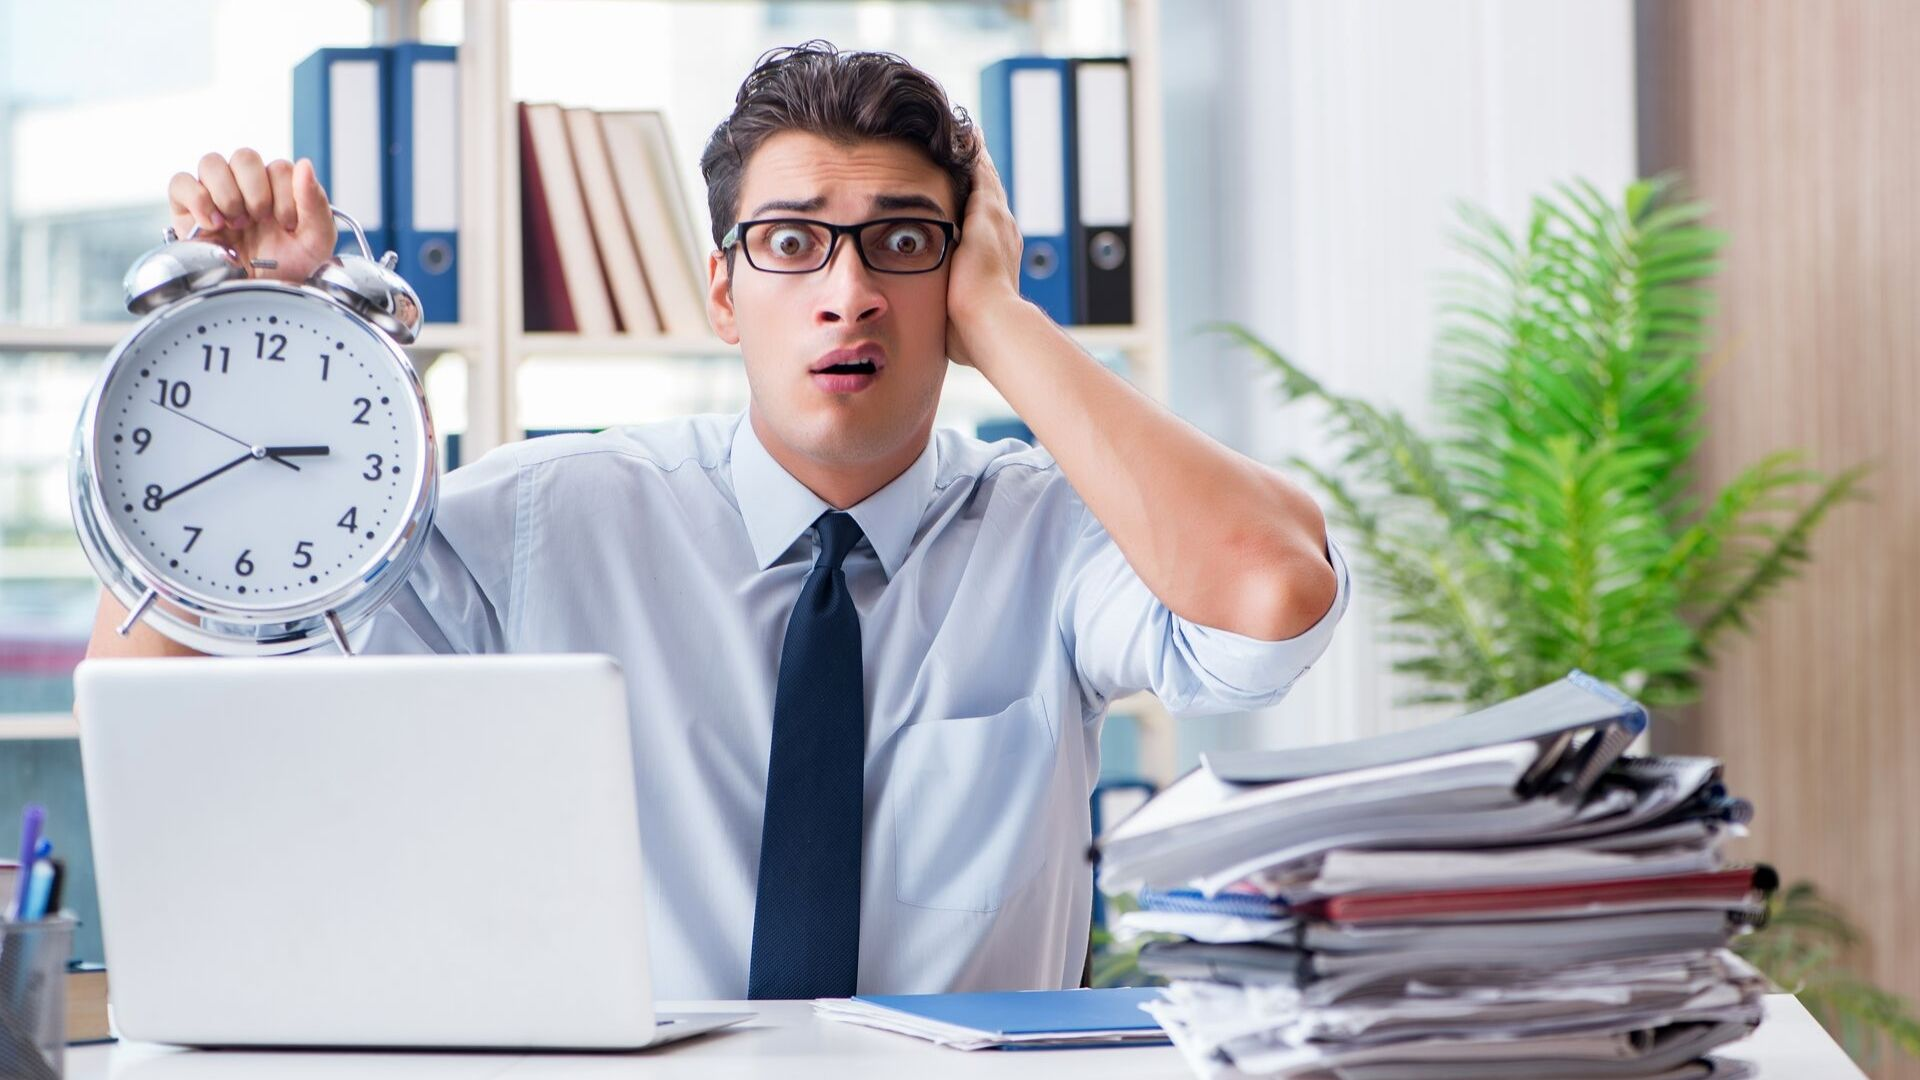 Business person looking worried at missing the deadline